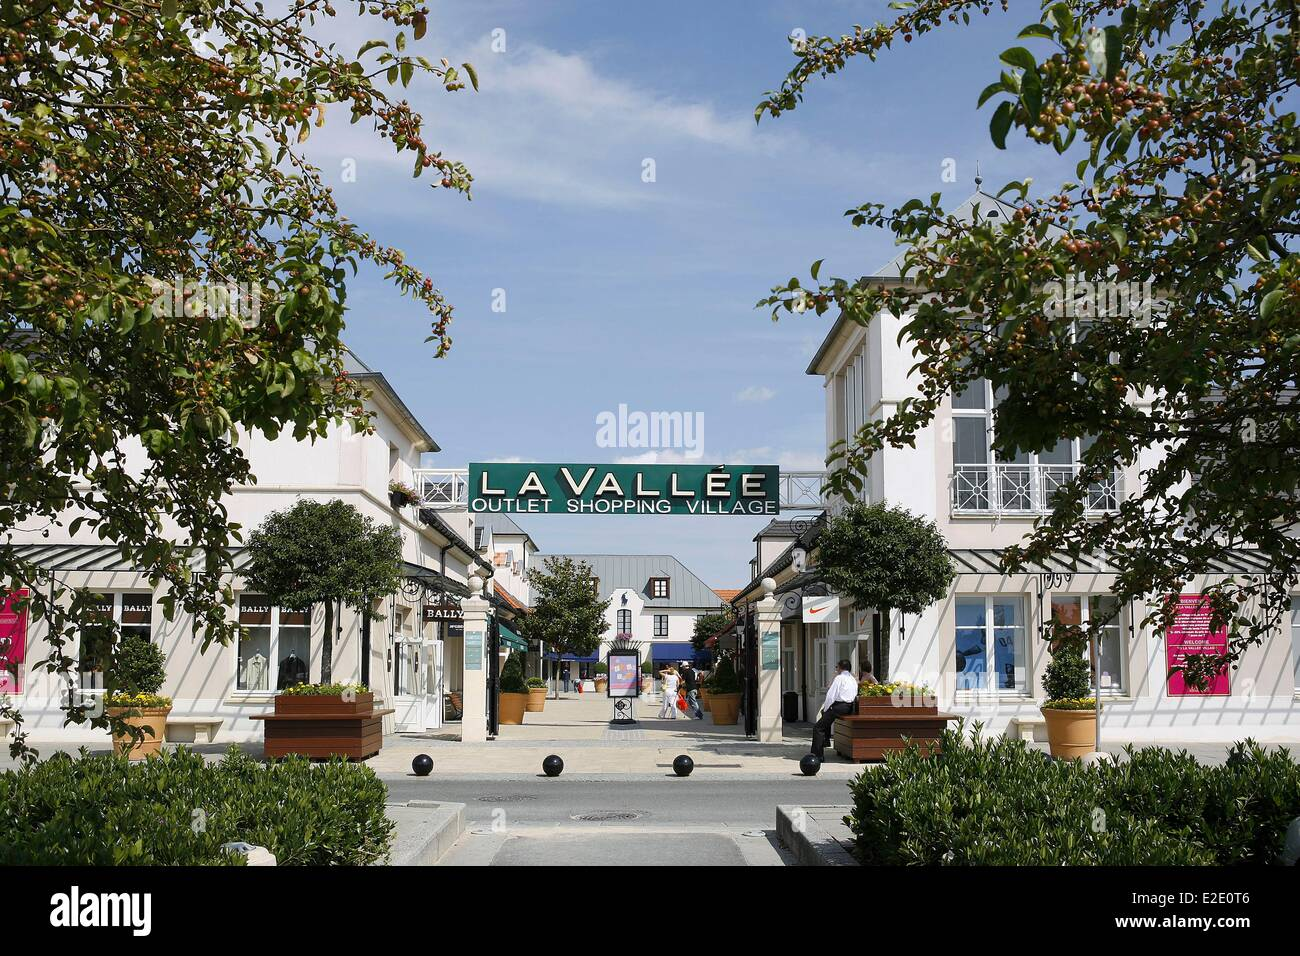 France seine et marne serris val d 39 europe la vallee outlet - Val d europe village horaire ...